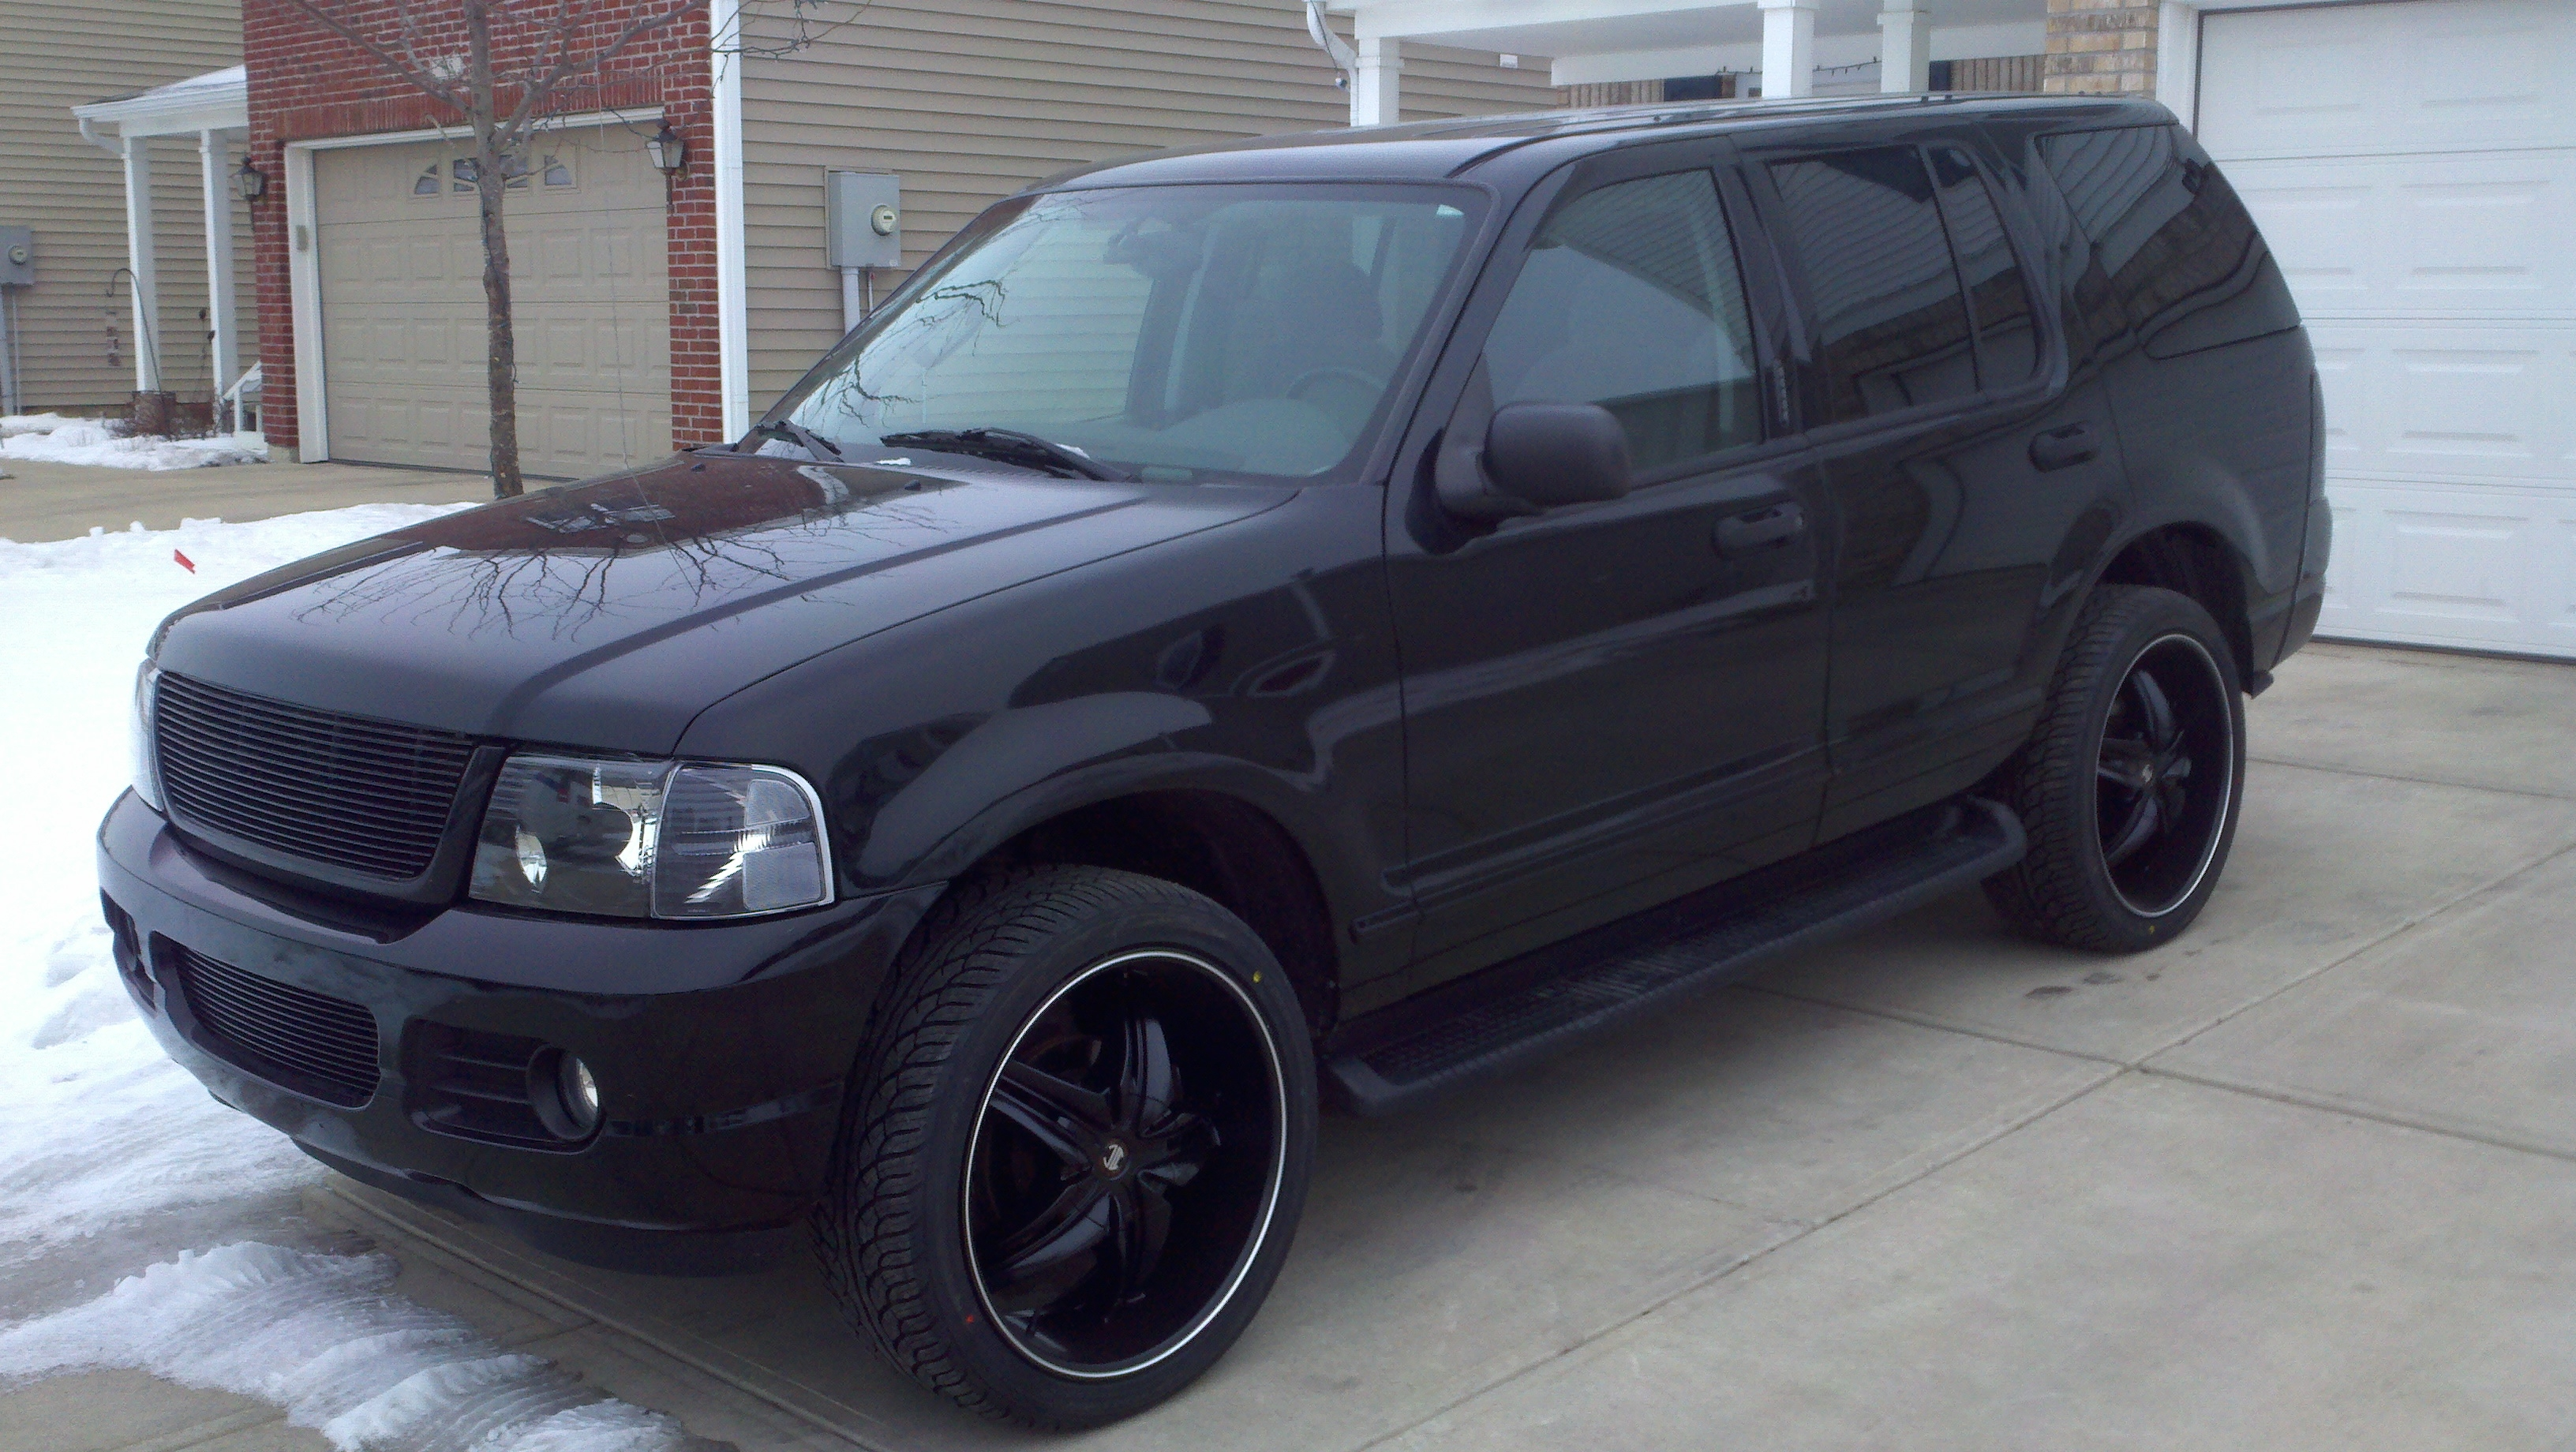 Blacked Out Explorer >> djacob 2005 Ford ExplorerLimited Sport Utility 4D Specs, Photos, Modification Info at CarDomain